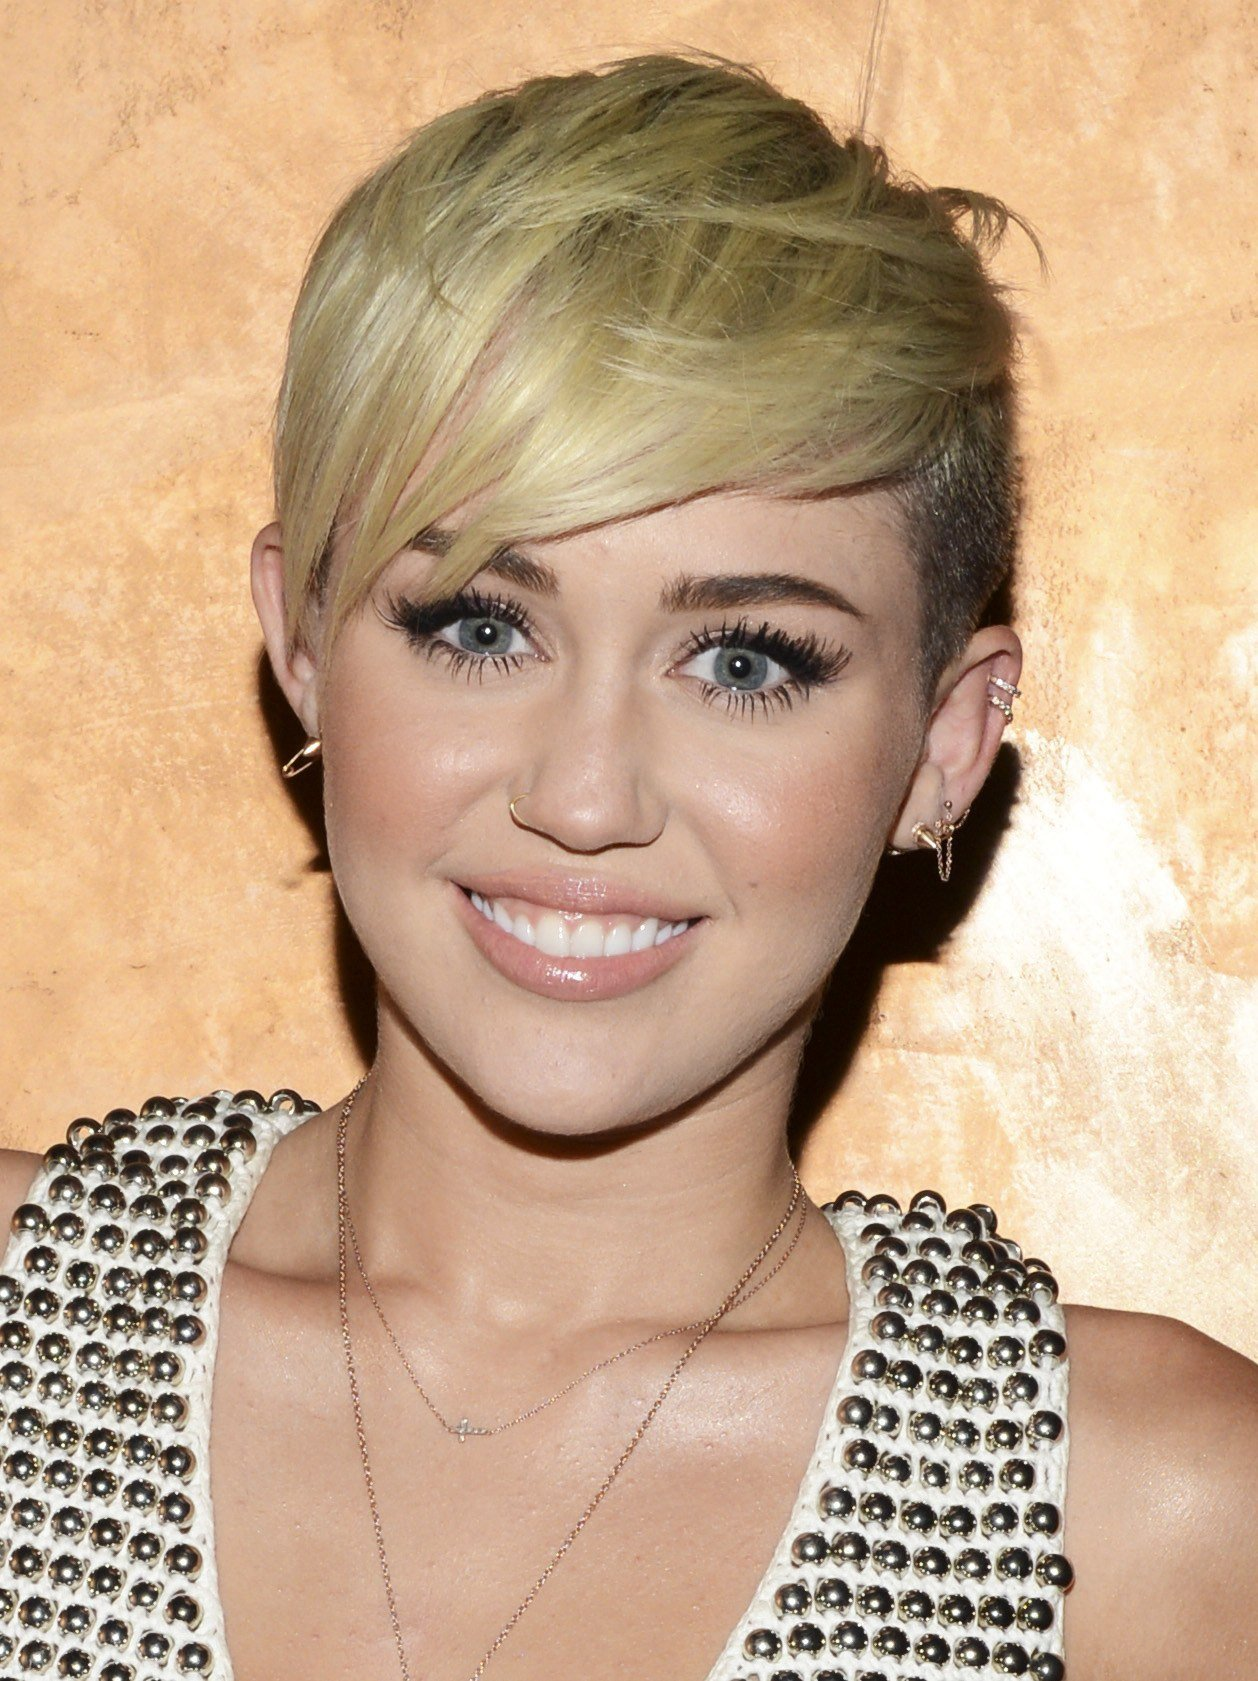 The Best Miley Cyrus Haircut Miley Cyrus Short Hair T**N Vogue Pictures